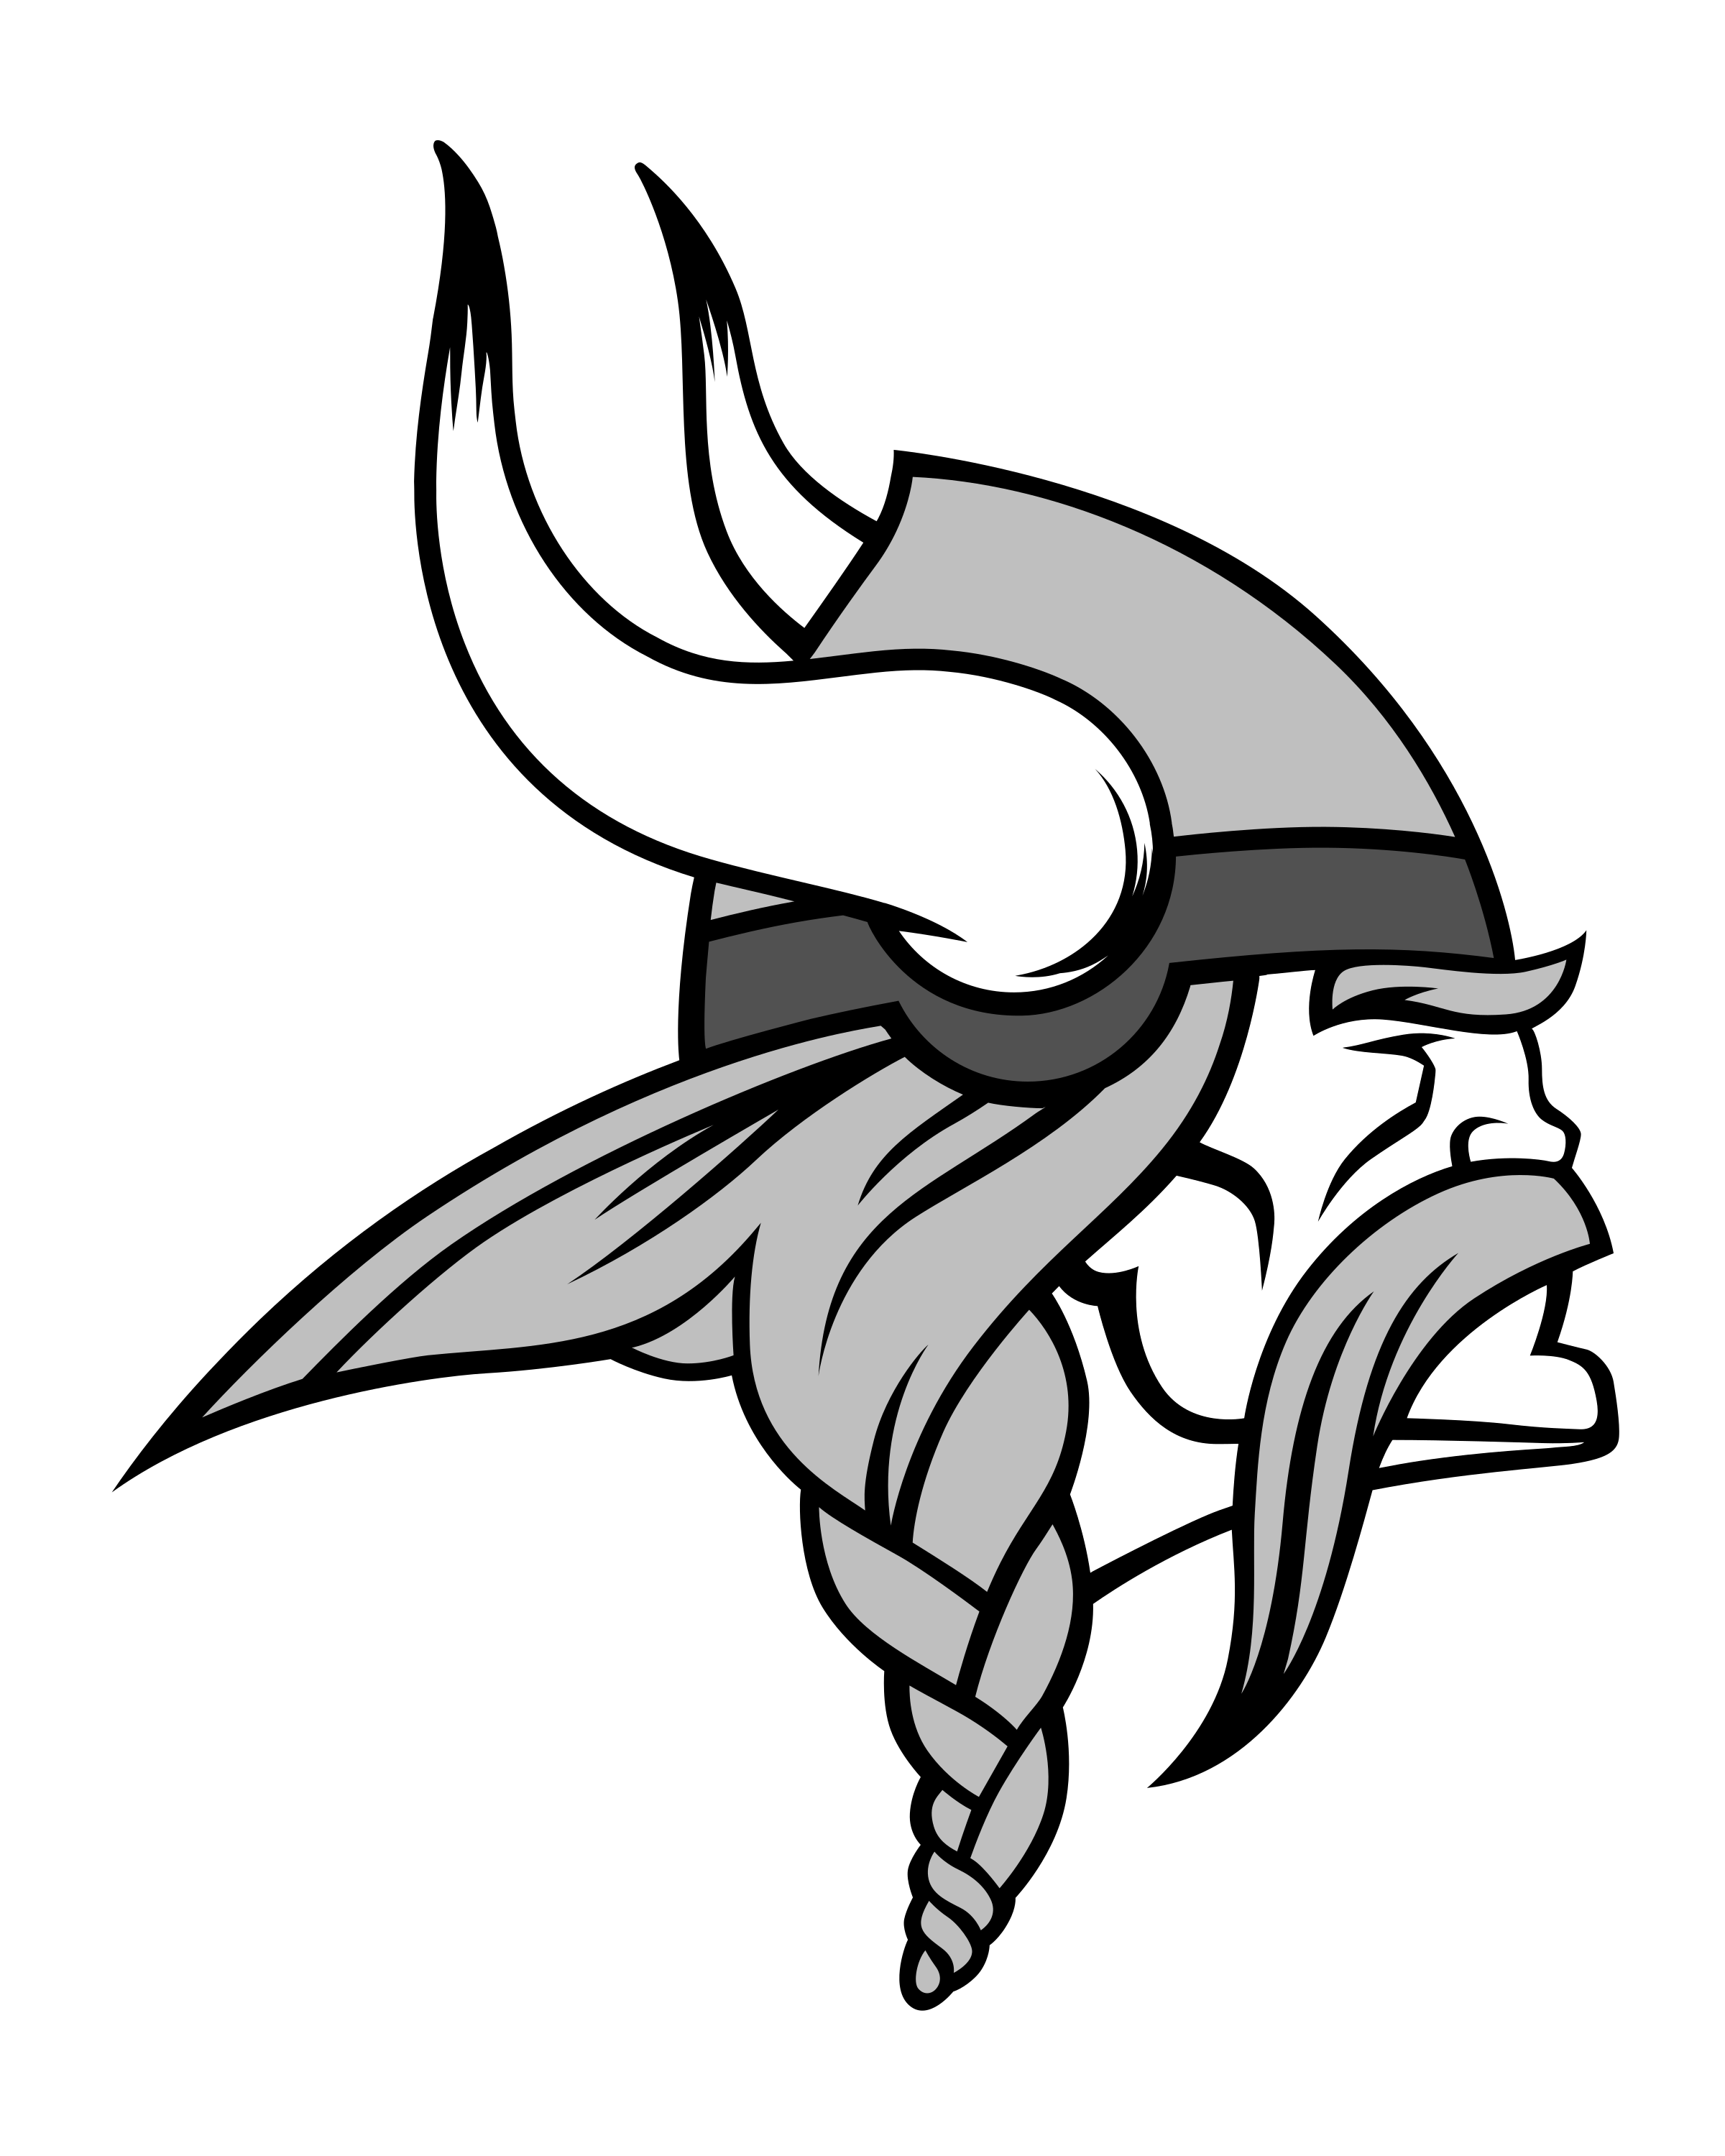 Minnesota Vikings Logo PNG Transparent & SVG Vector.